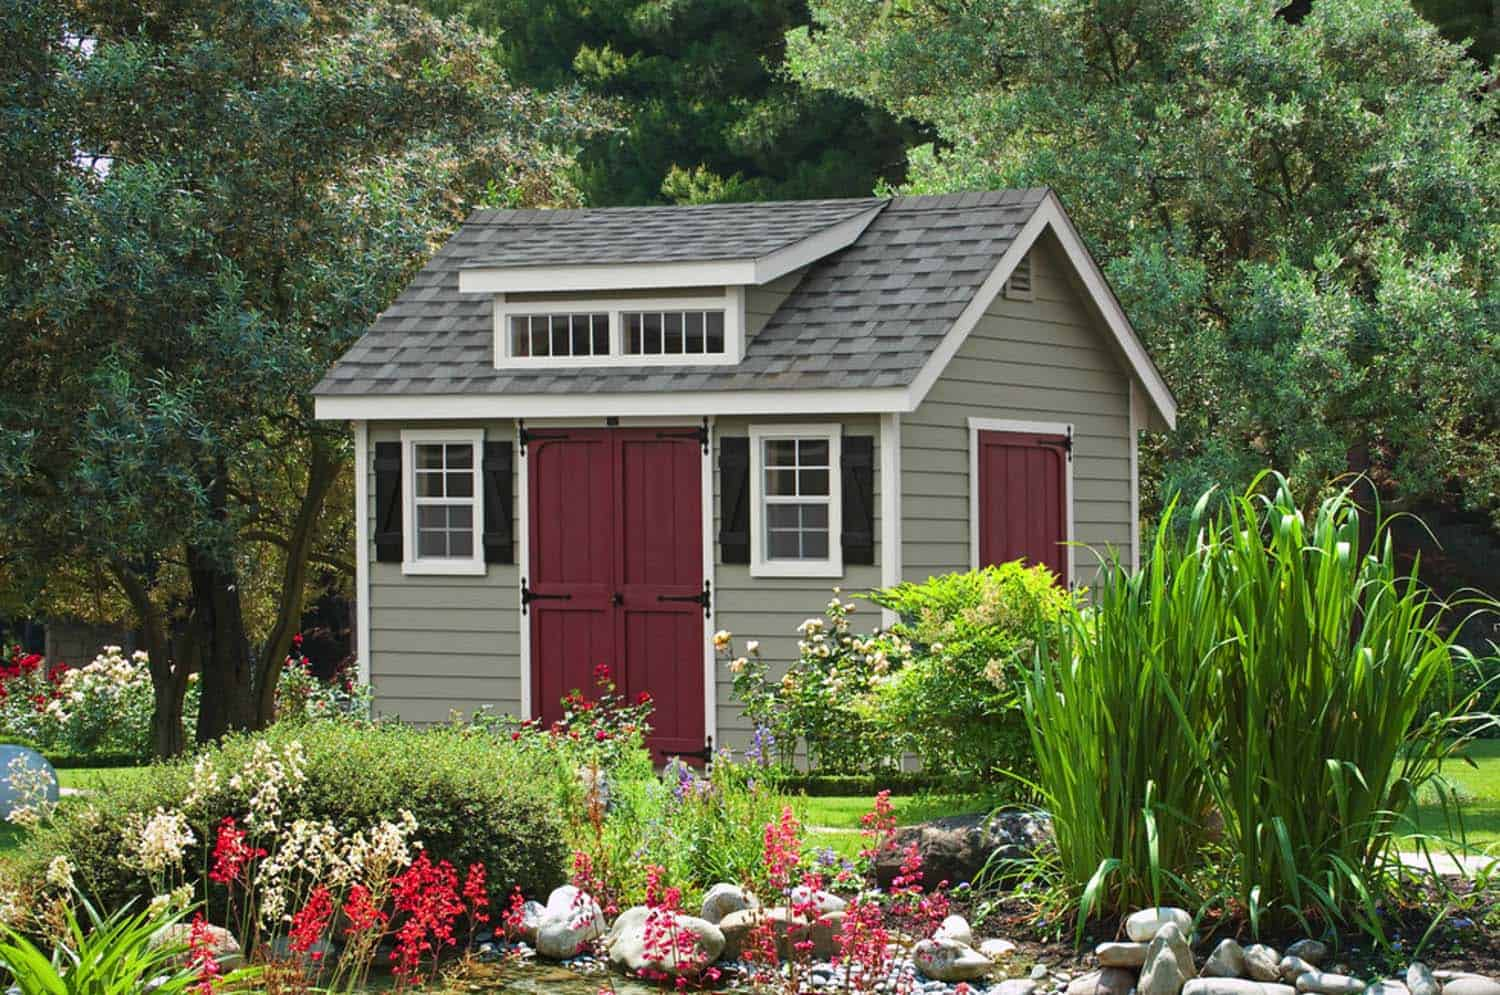 Garden Shed Ideas-13-1 Kindesign